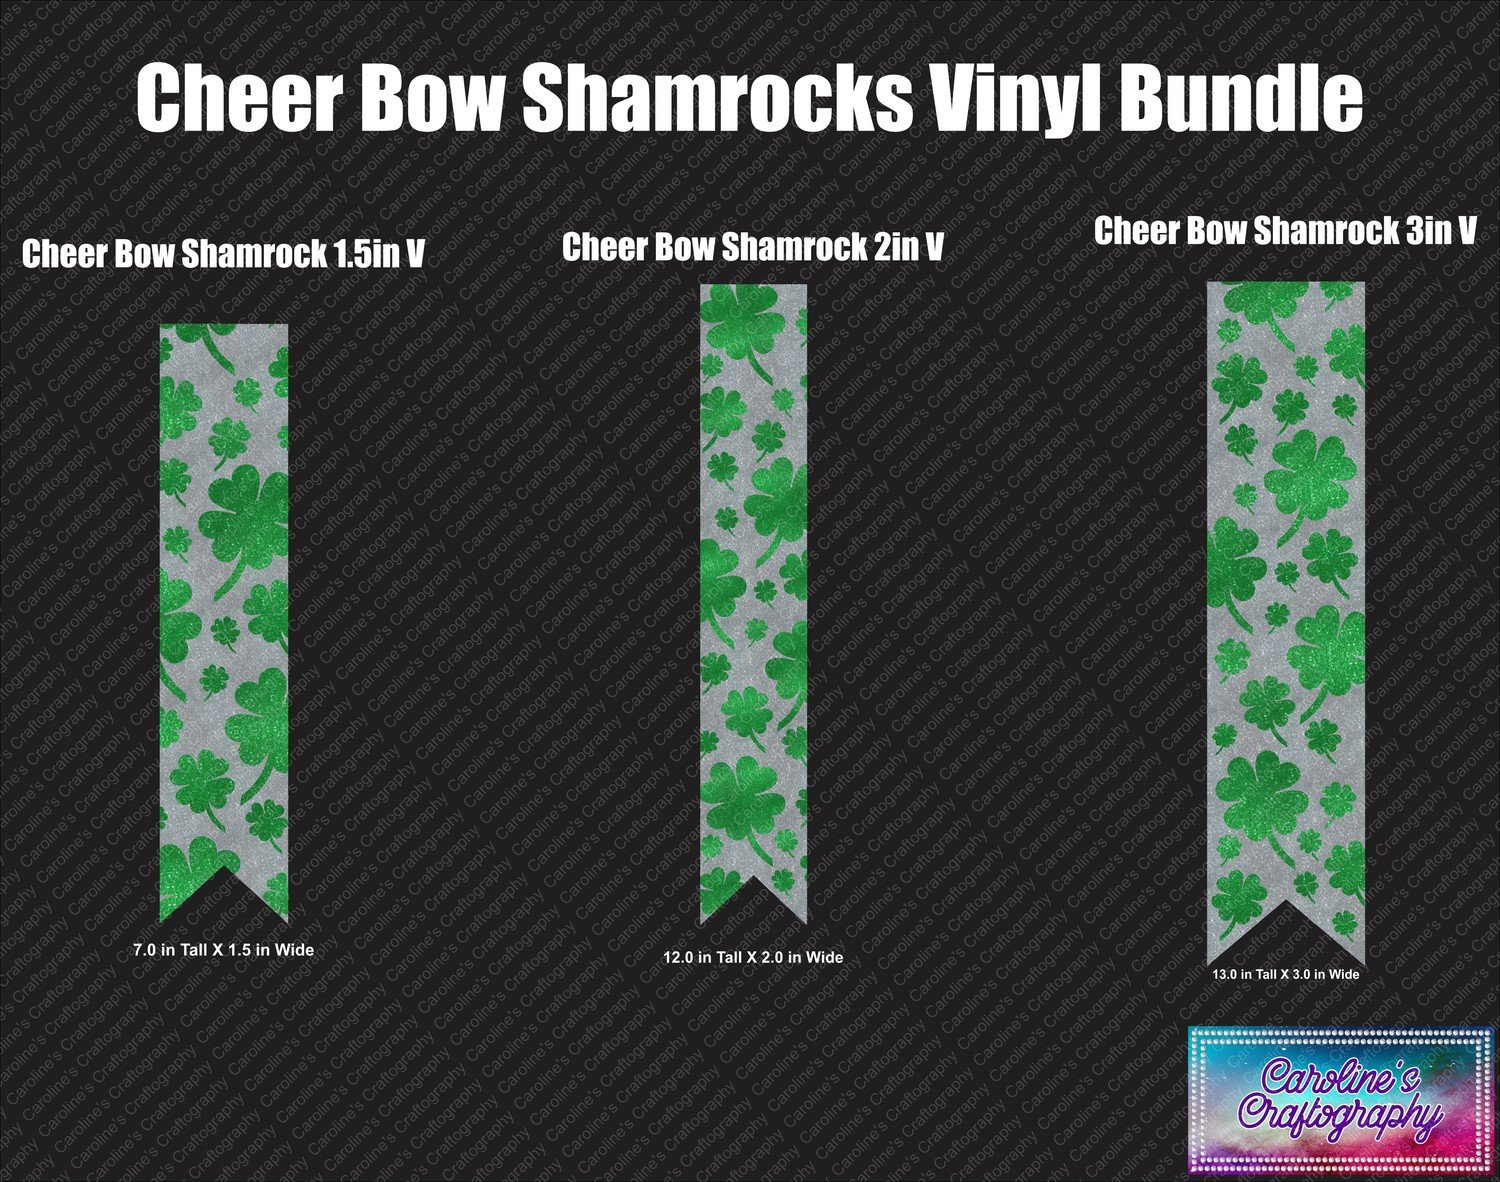 Cheer Bow Shamrocks Vinyl Bundle